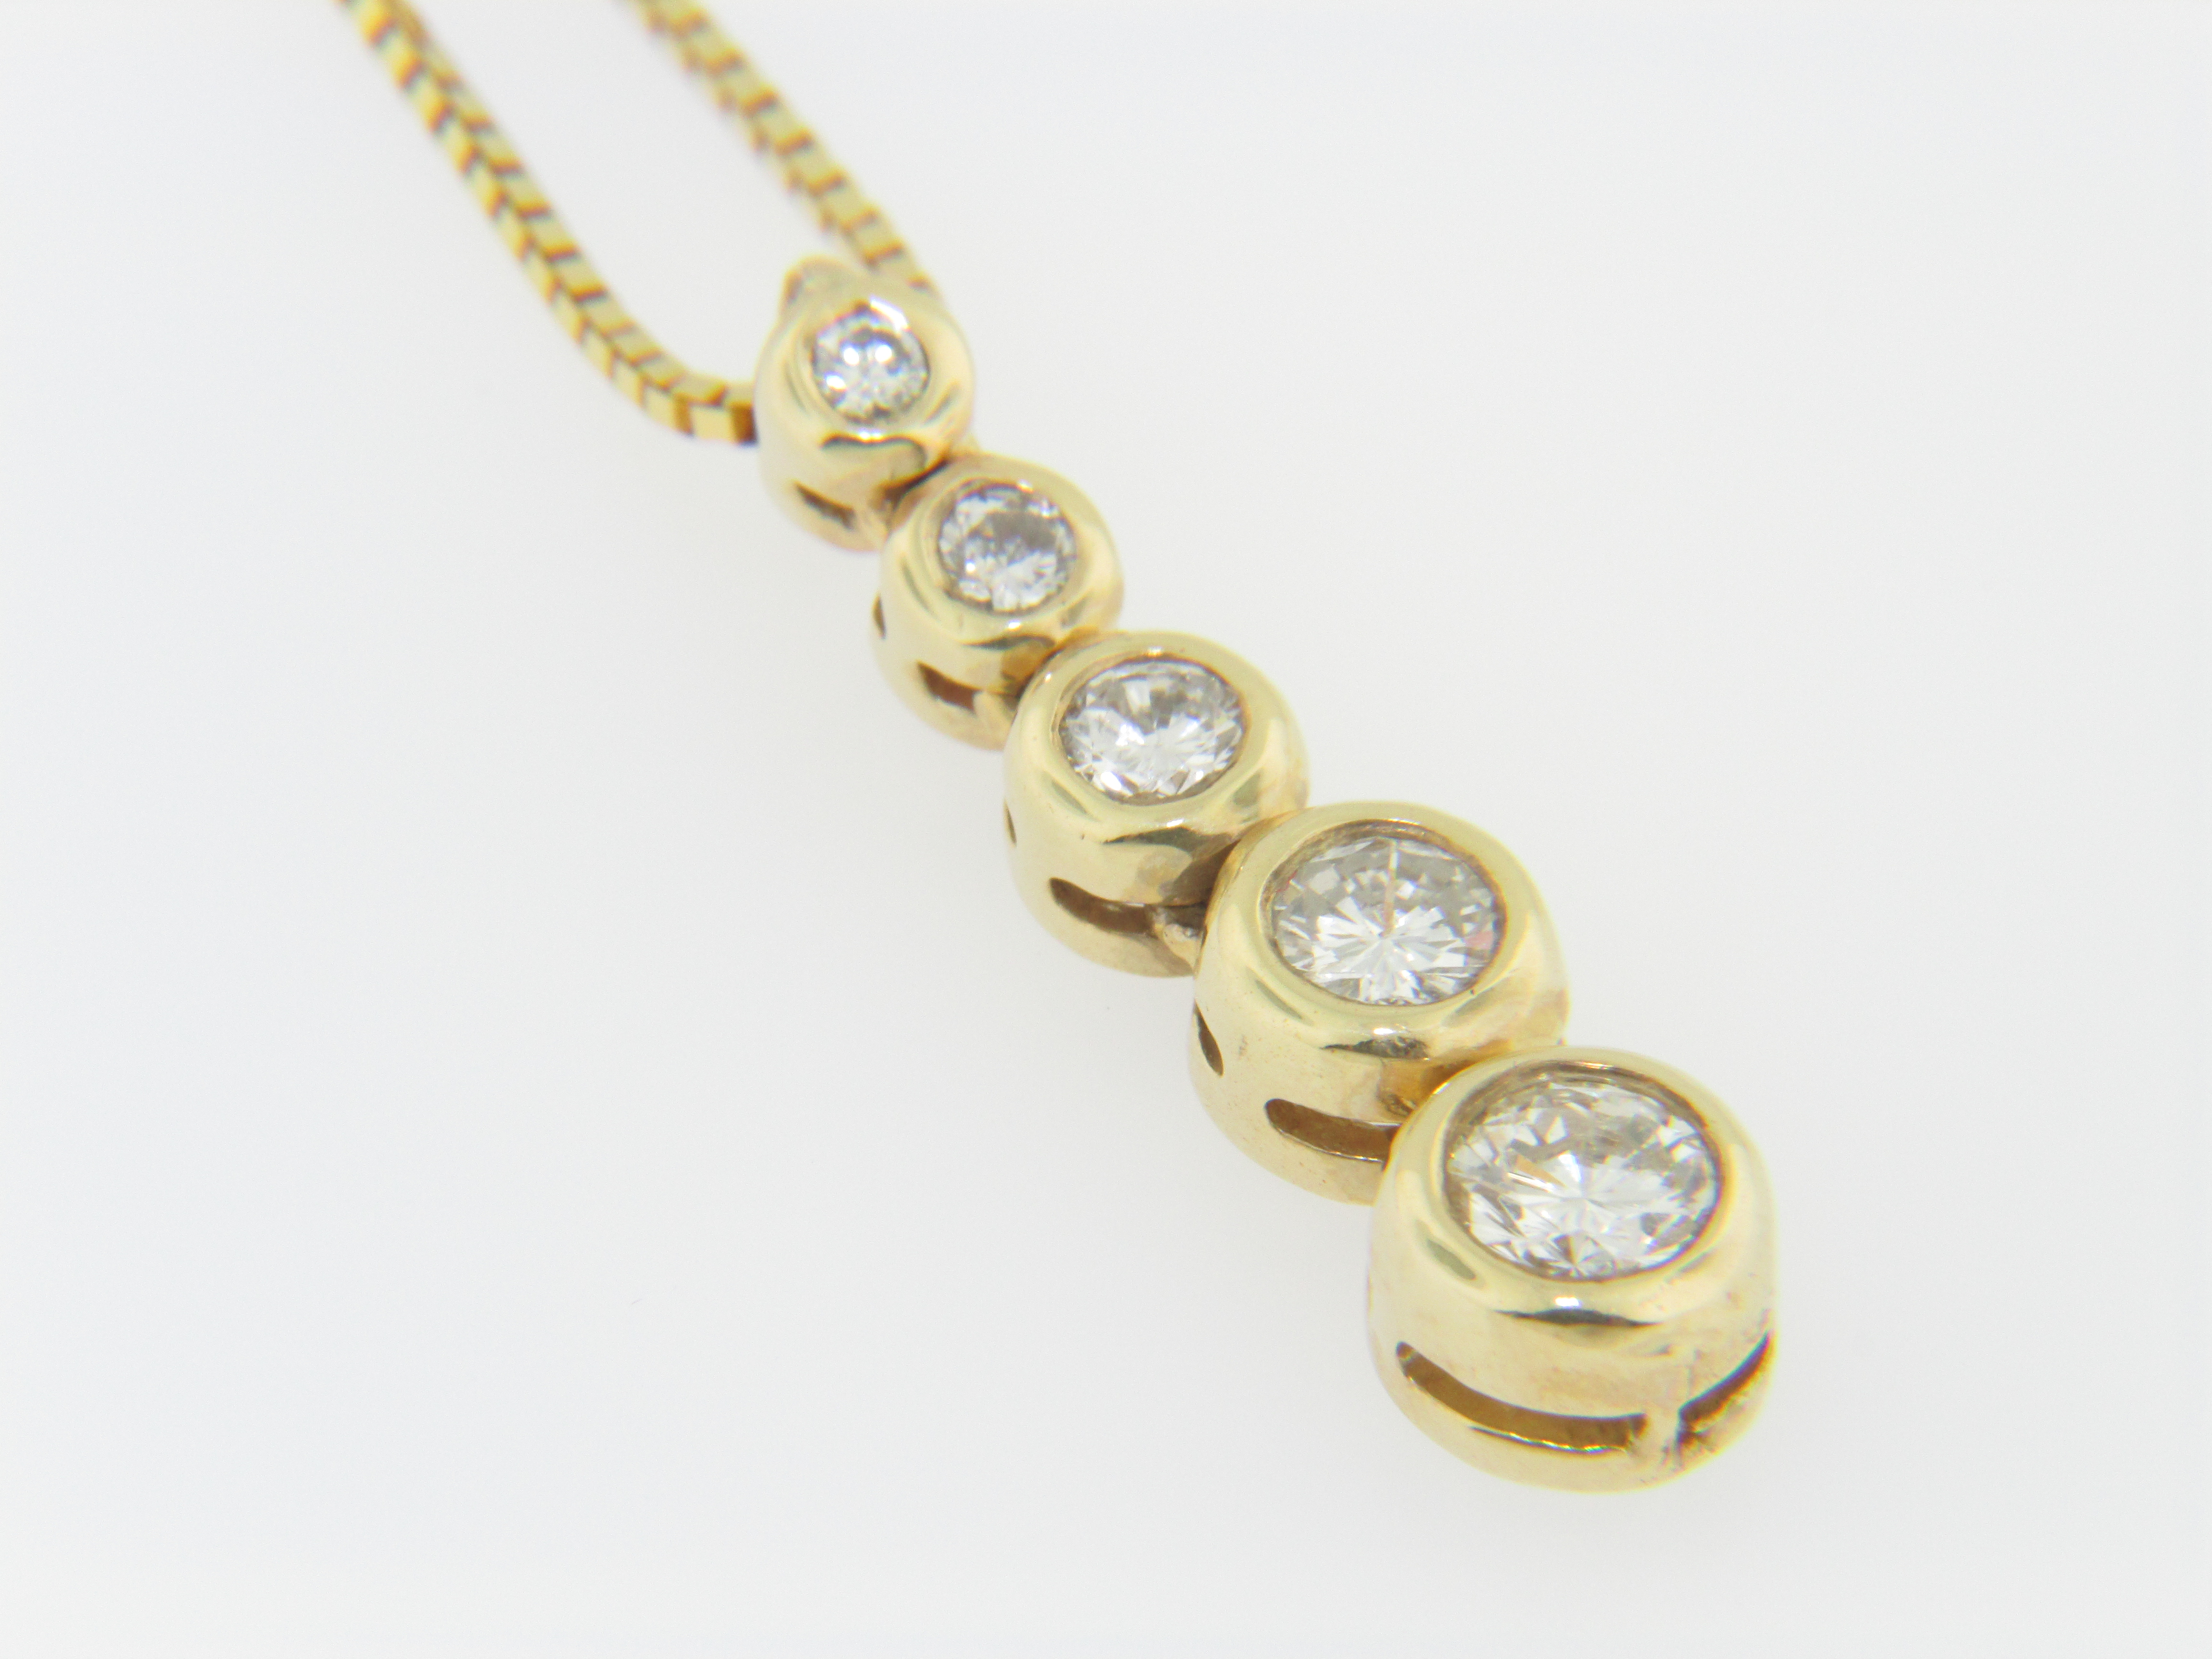 Contemporary 078ctw round diamond 5 tier pendant necklace in 14k this is a contemporary 078ctw round diamond 5 tier pendant necklace in 14k yellow gold the necklace as a whole weighs 52 grams aloadofball Gallery